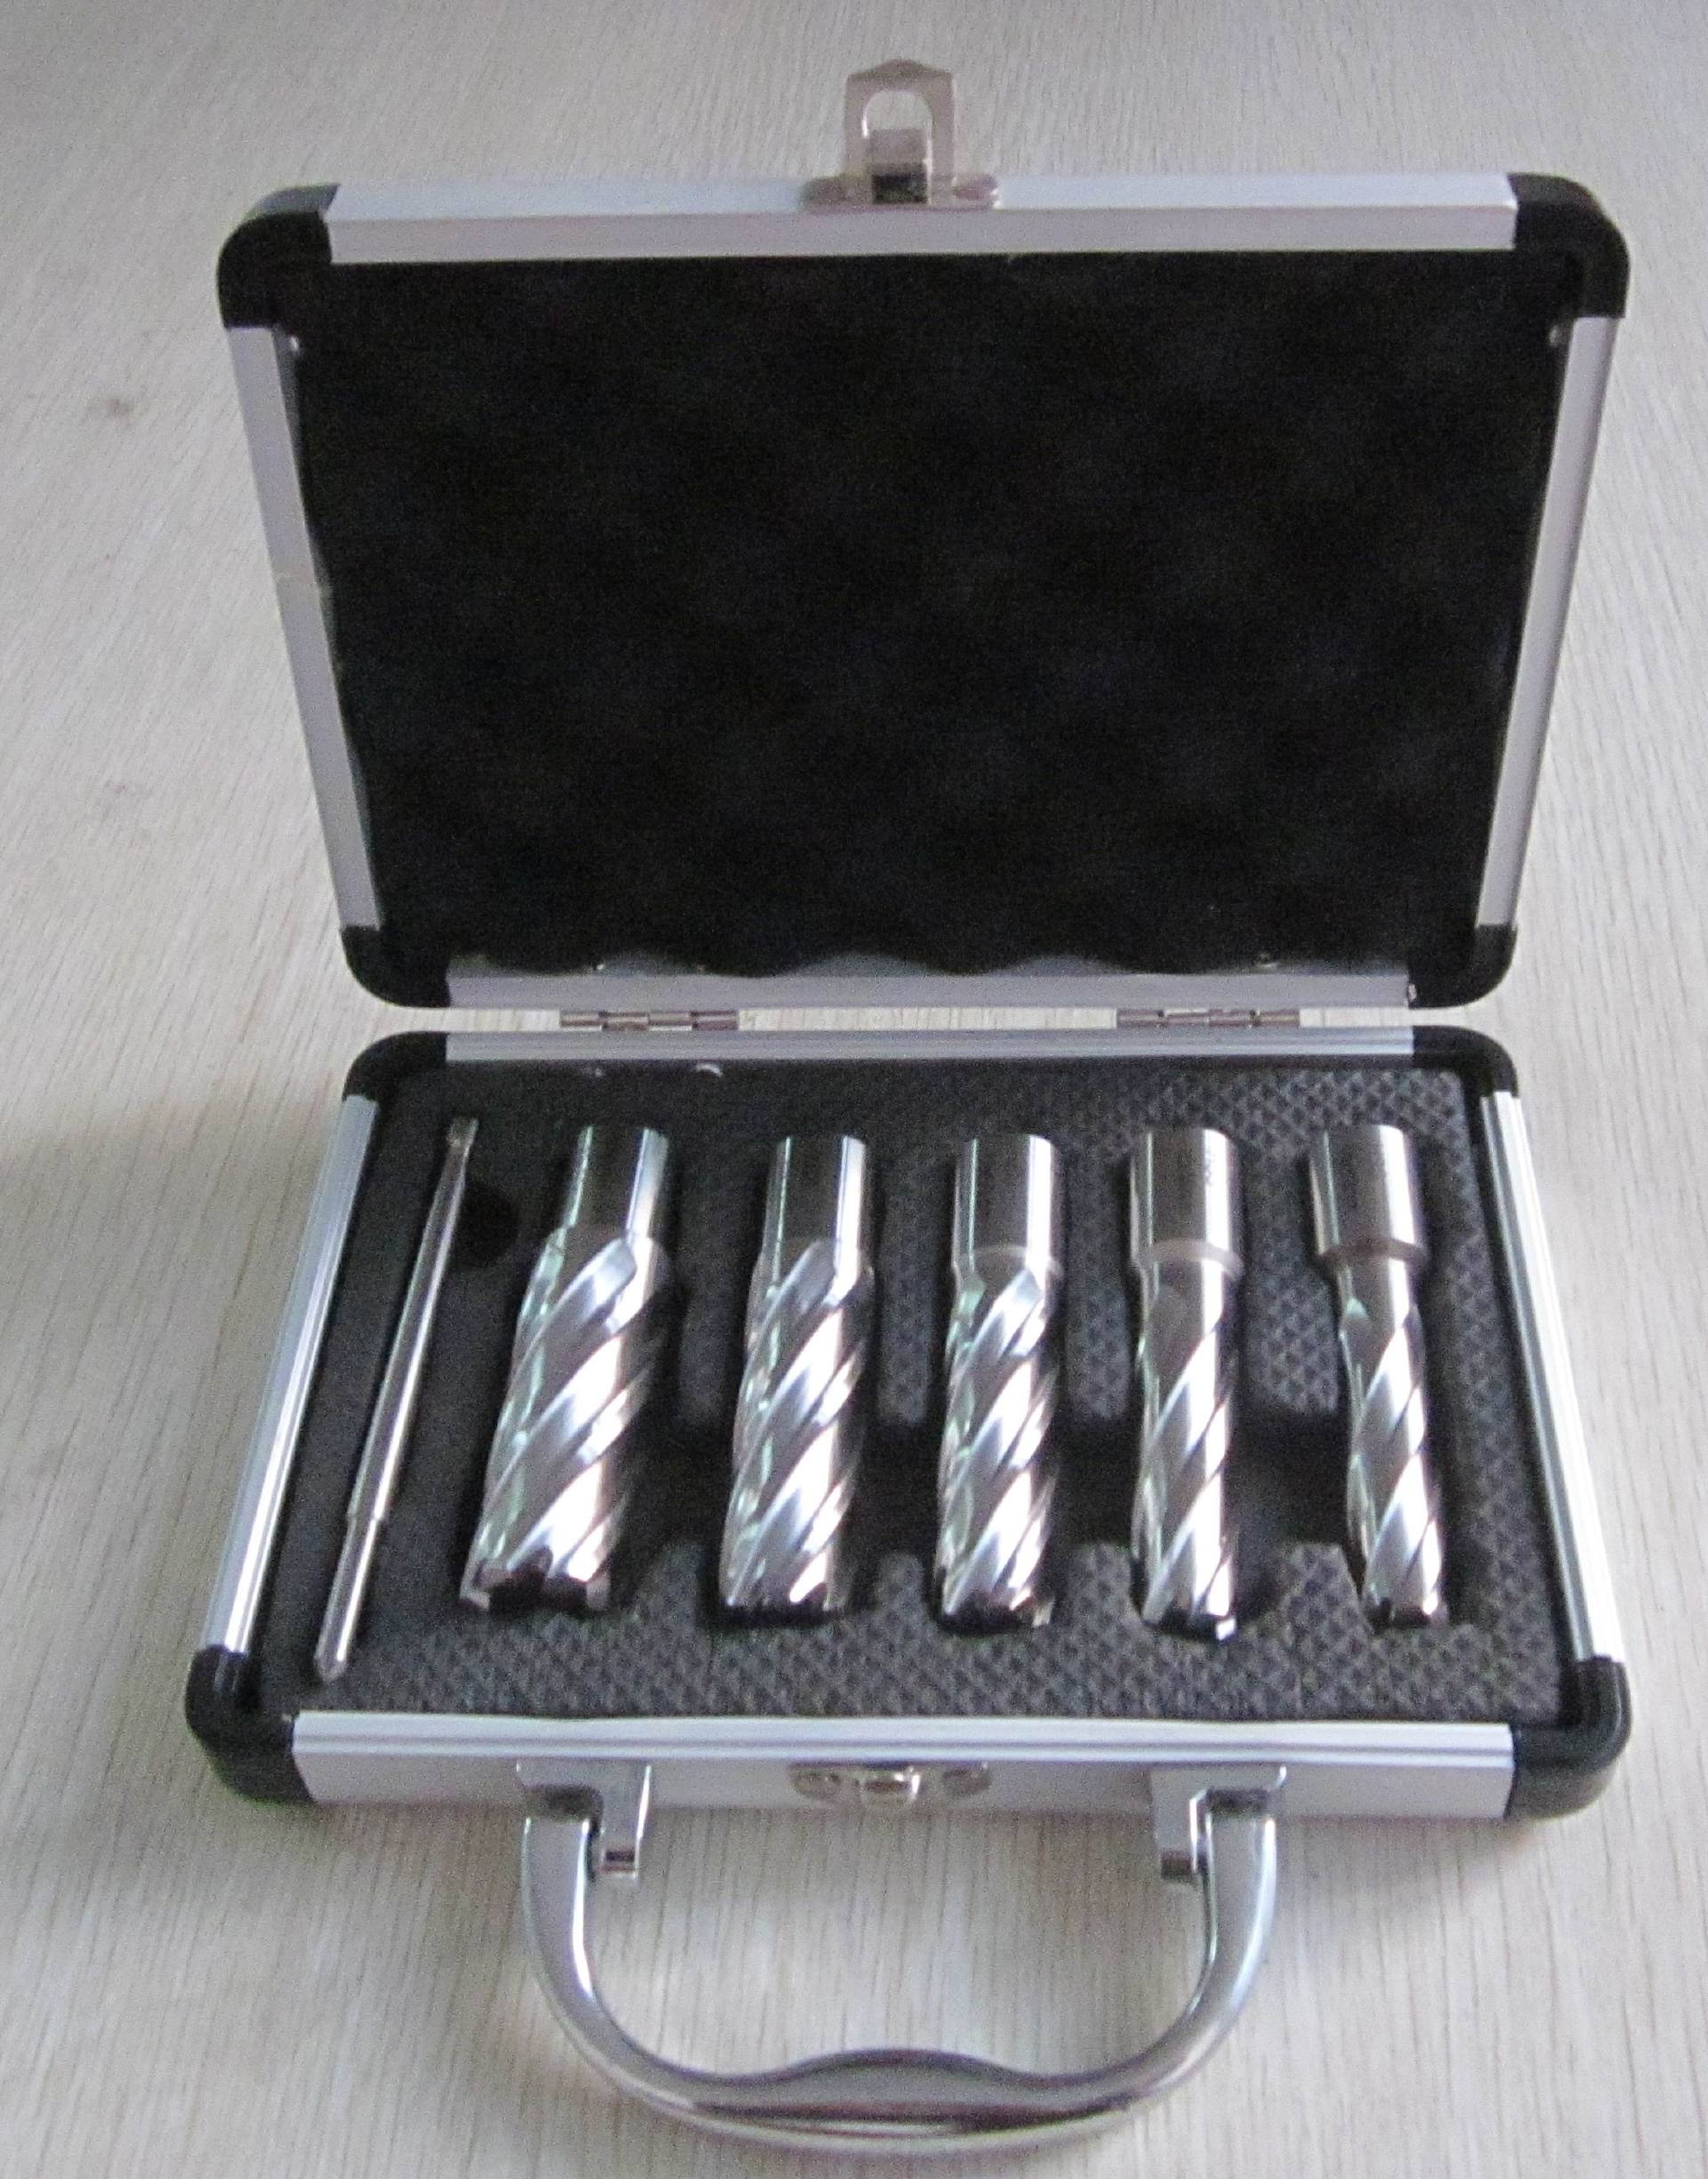 6pcs Annular Cutter Set Aluminium Box